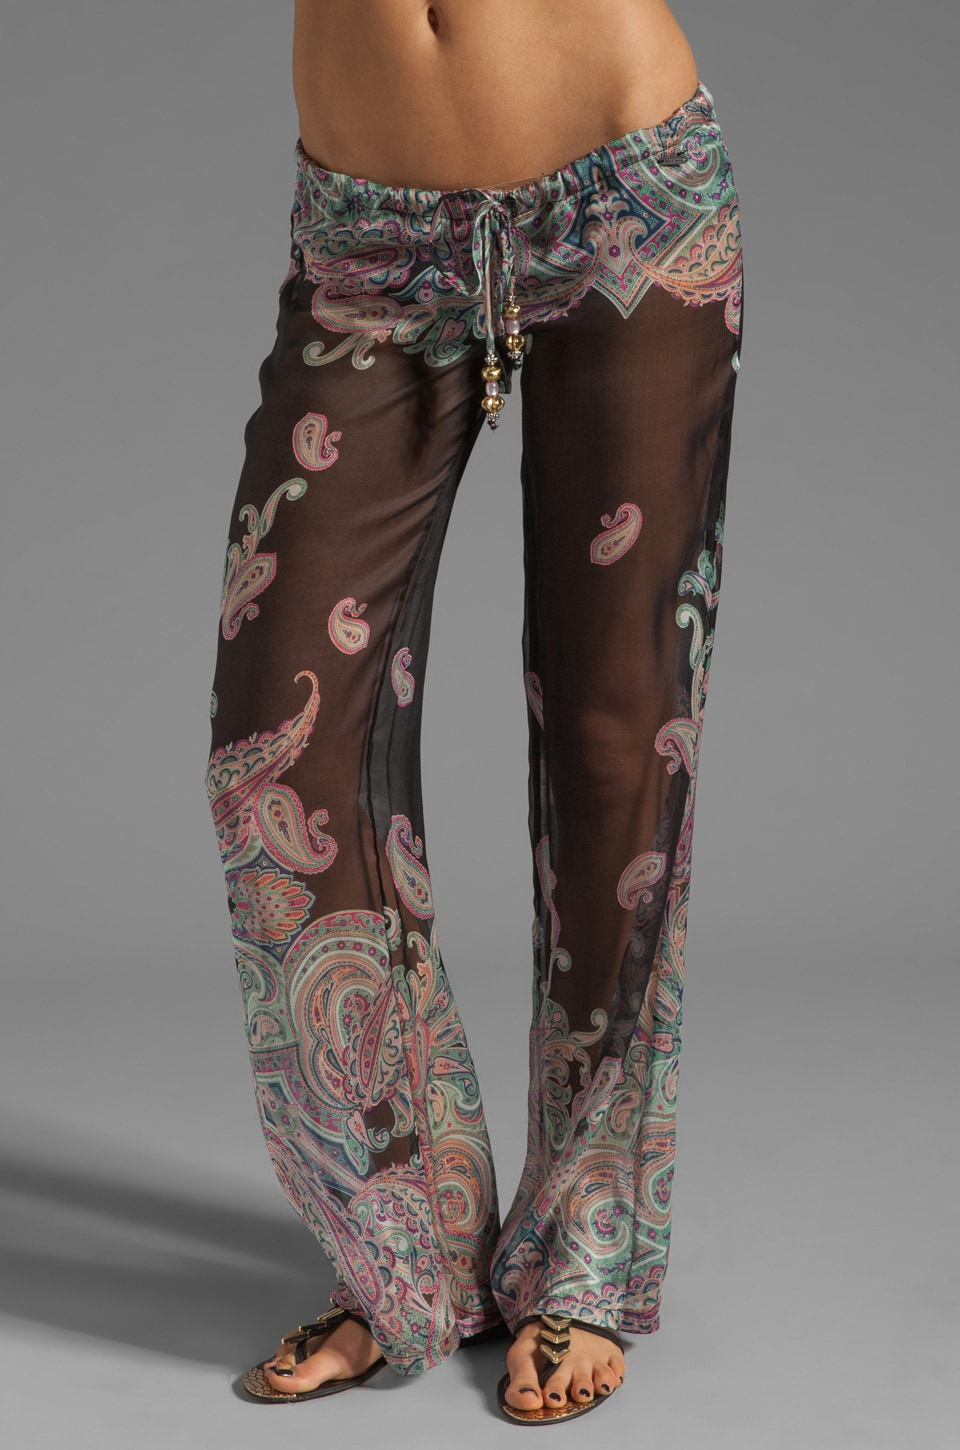 Beach Bunny Let Your Love Flow Pant in Black Paisley